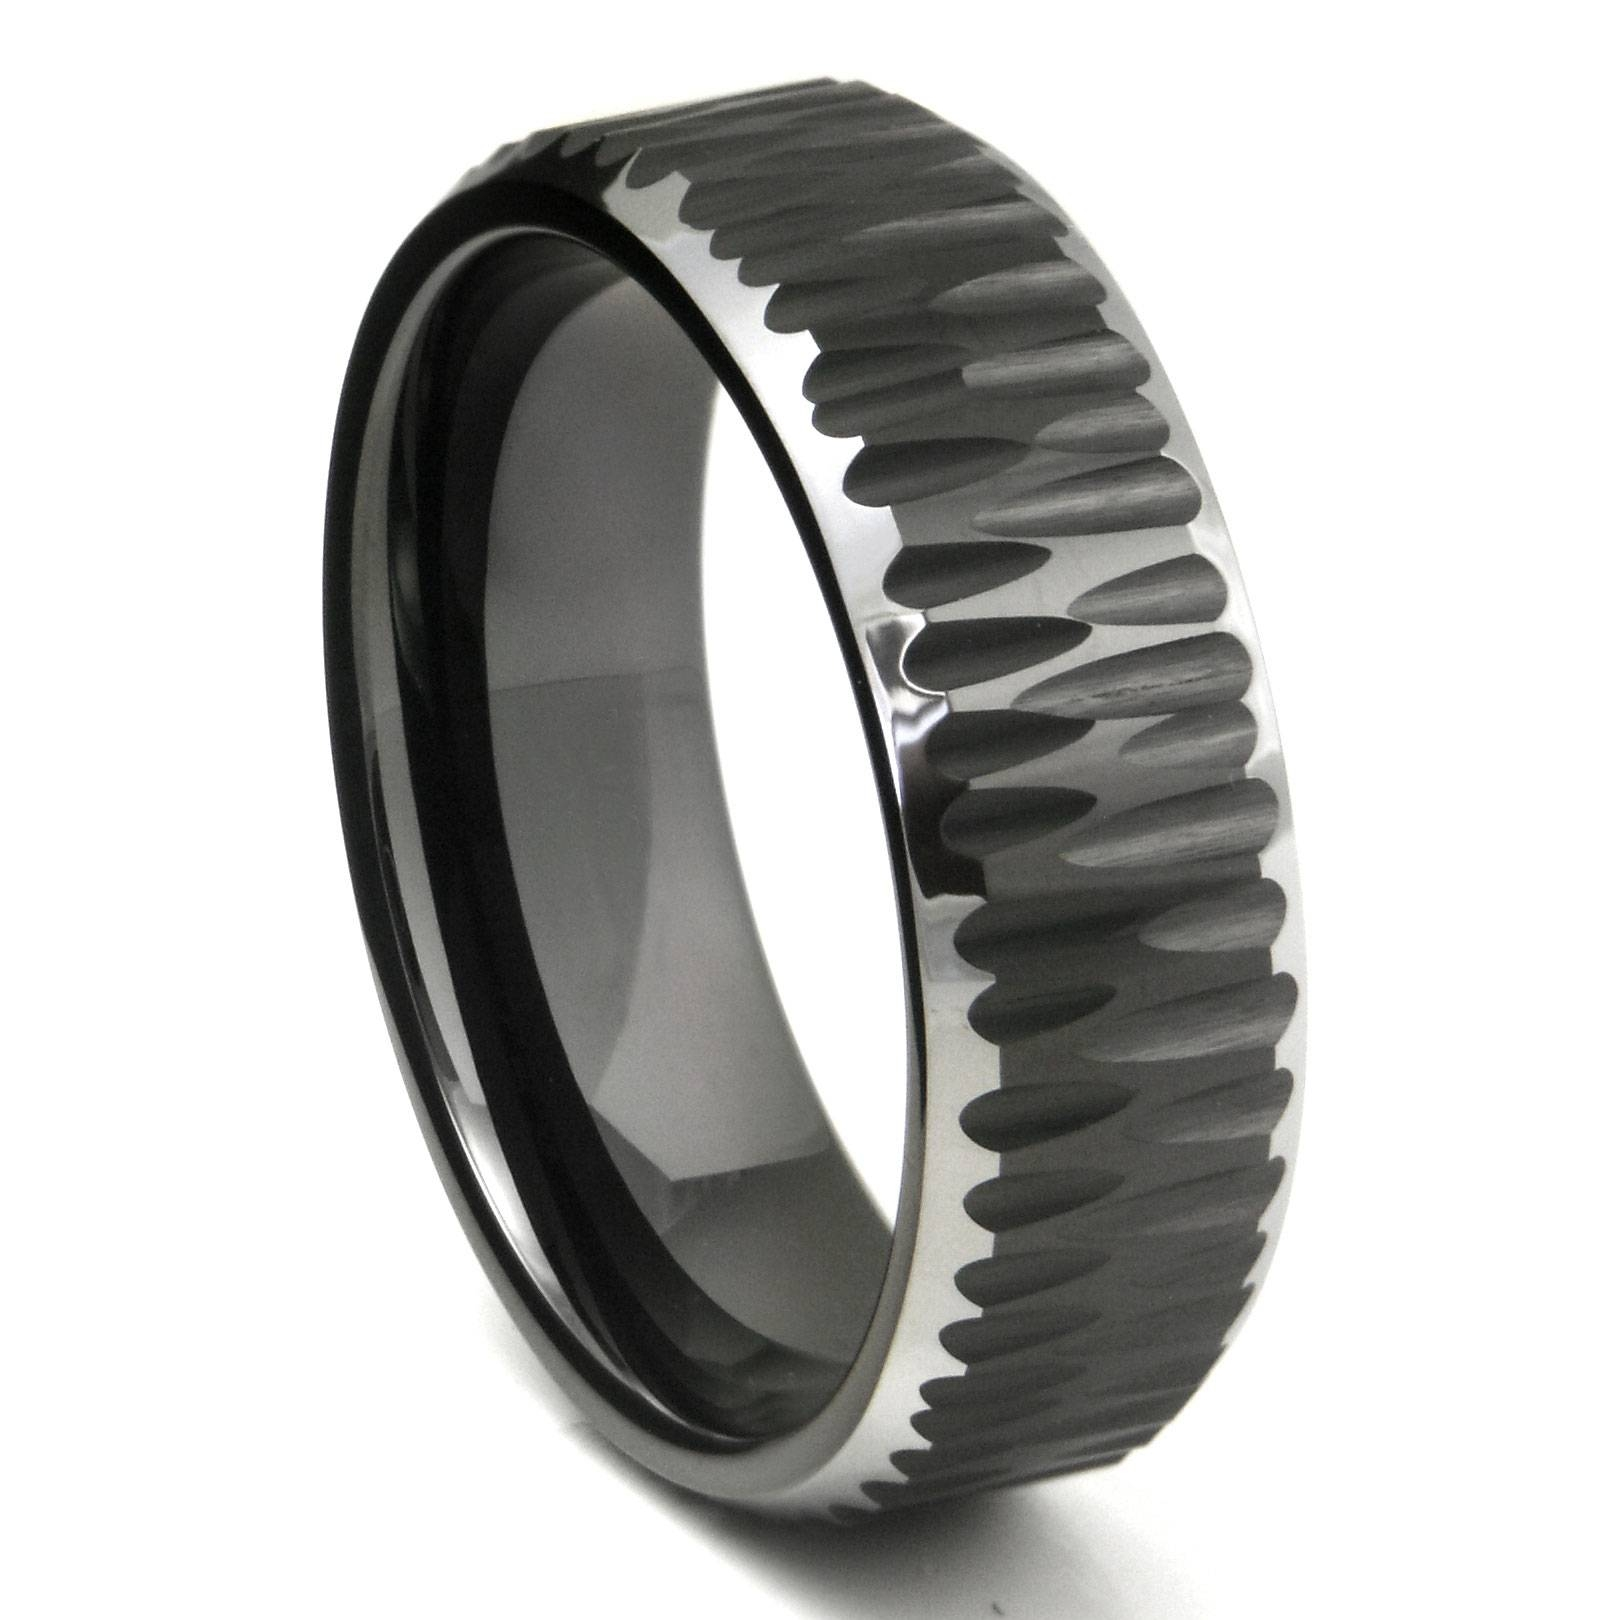 Black Tungsten Carbide Hammer Finish Beveled Wedding Band Ring Intended For Black Titanium Mens Wedding Rings (View 8 of 15)